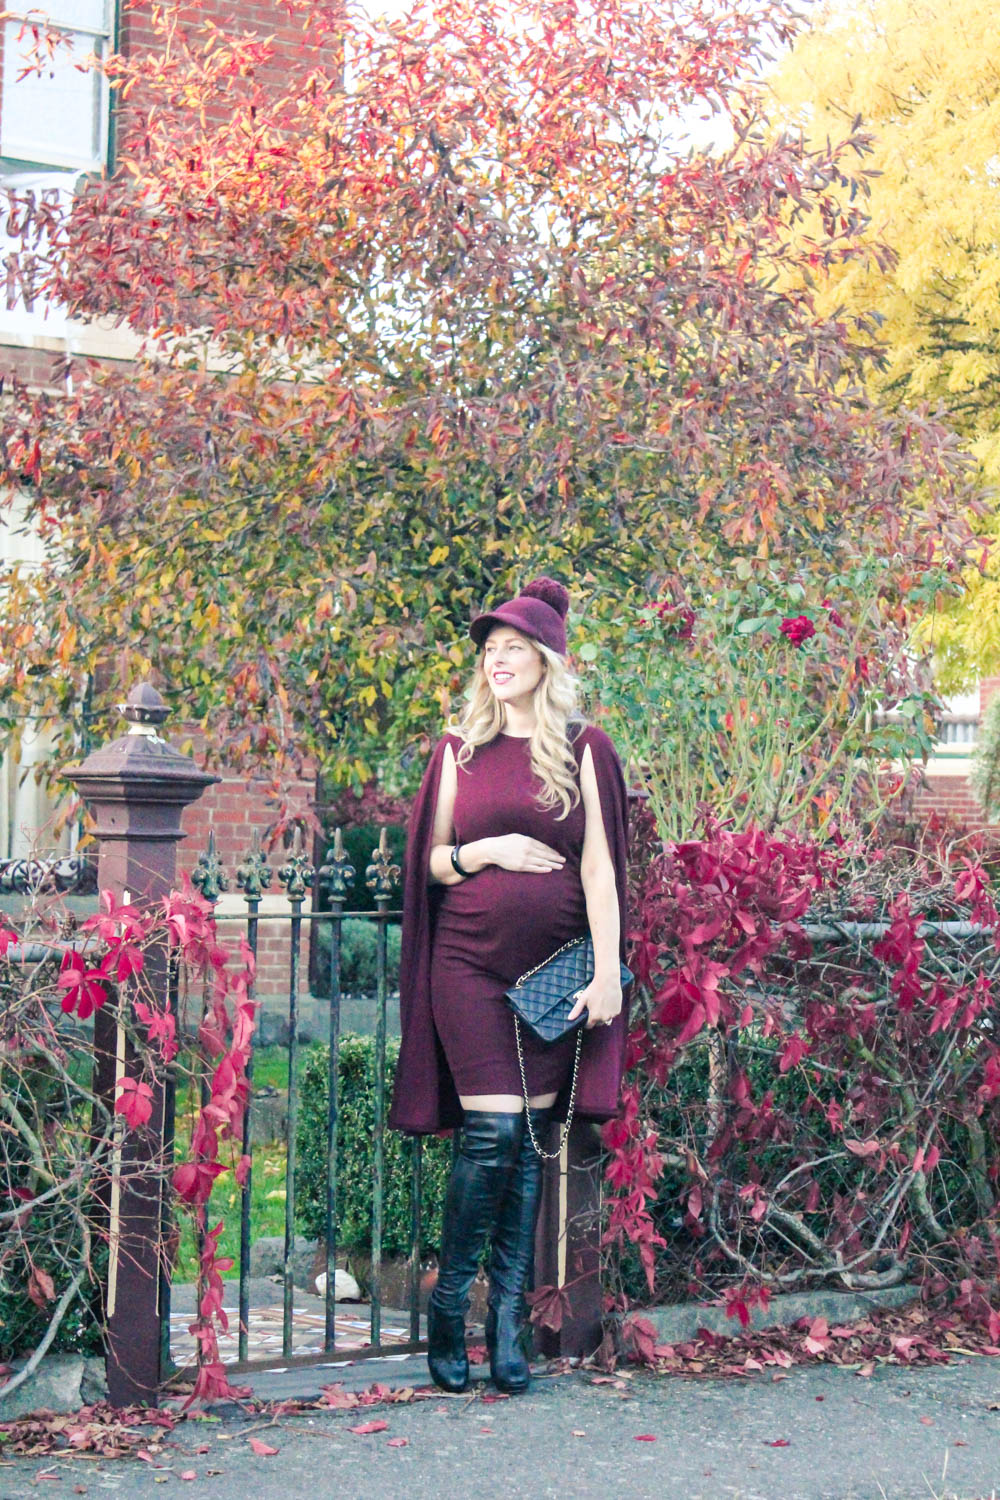 Visit the Goldfields Girl blog for more fashion and style